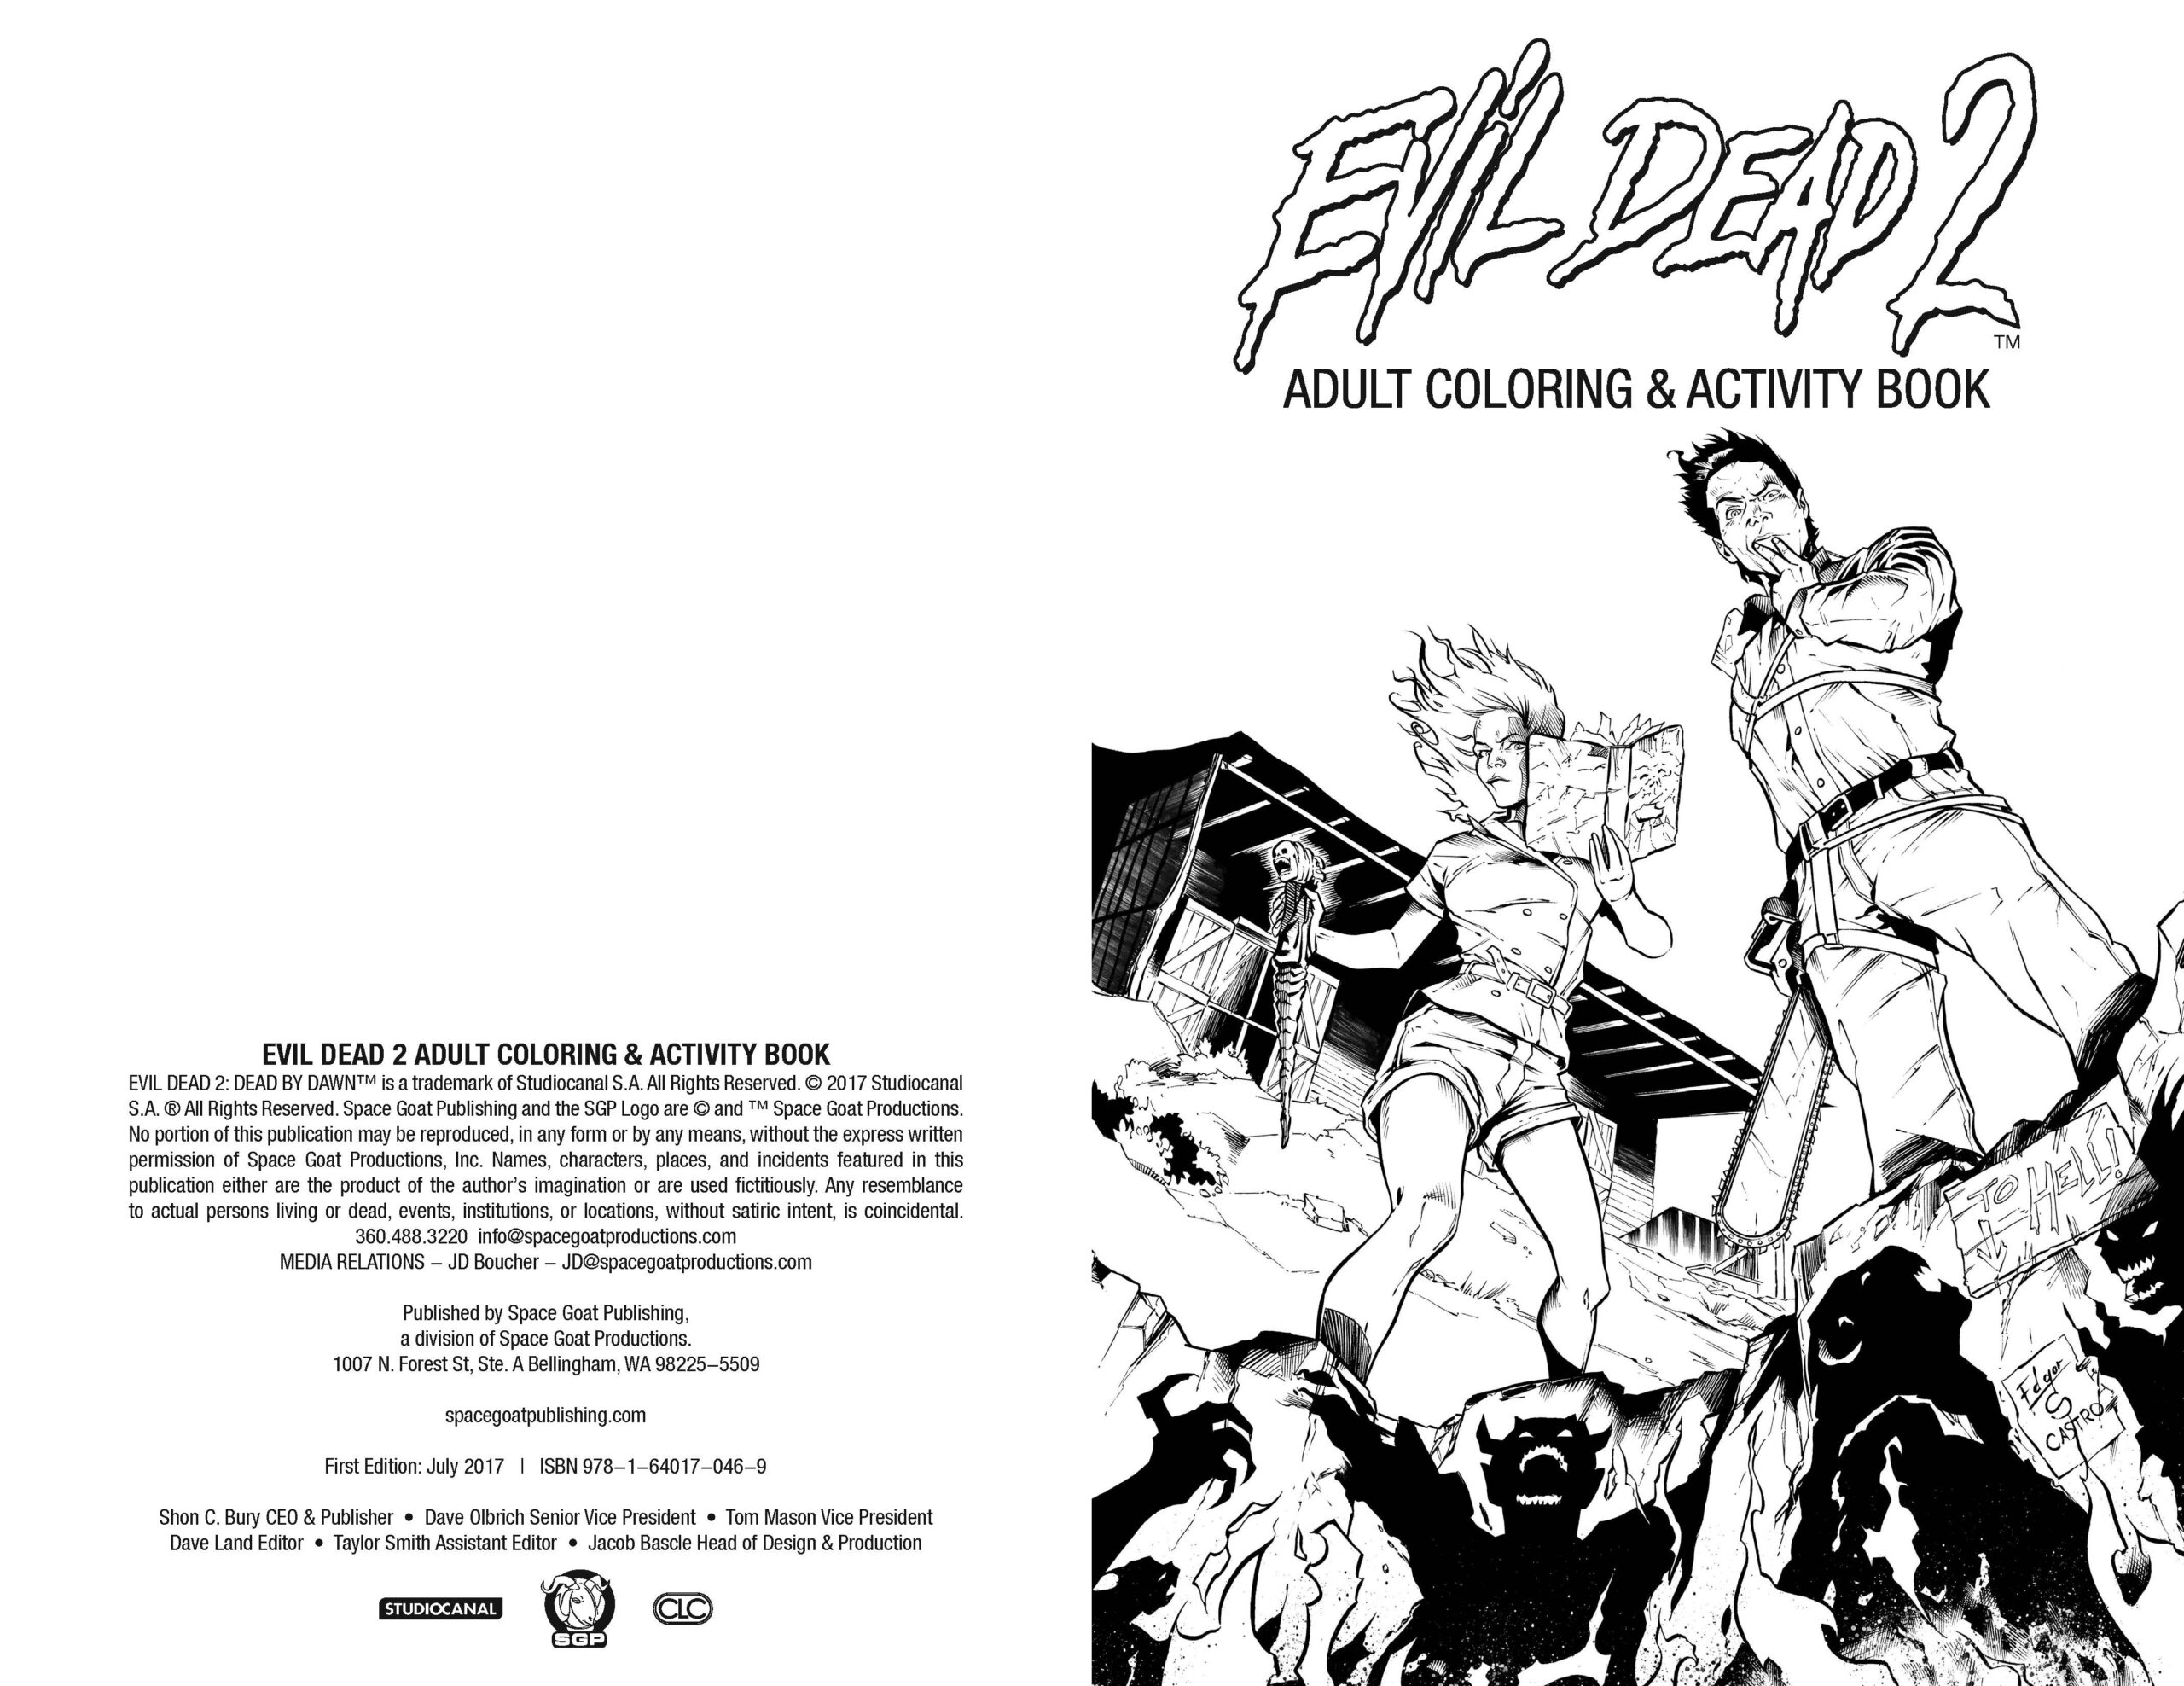 Evil Dead 2 Adult Coloring Activity Book Preview First